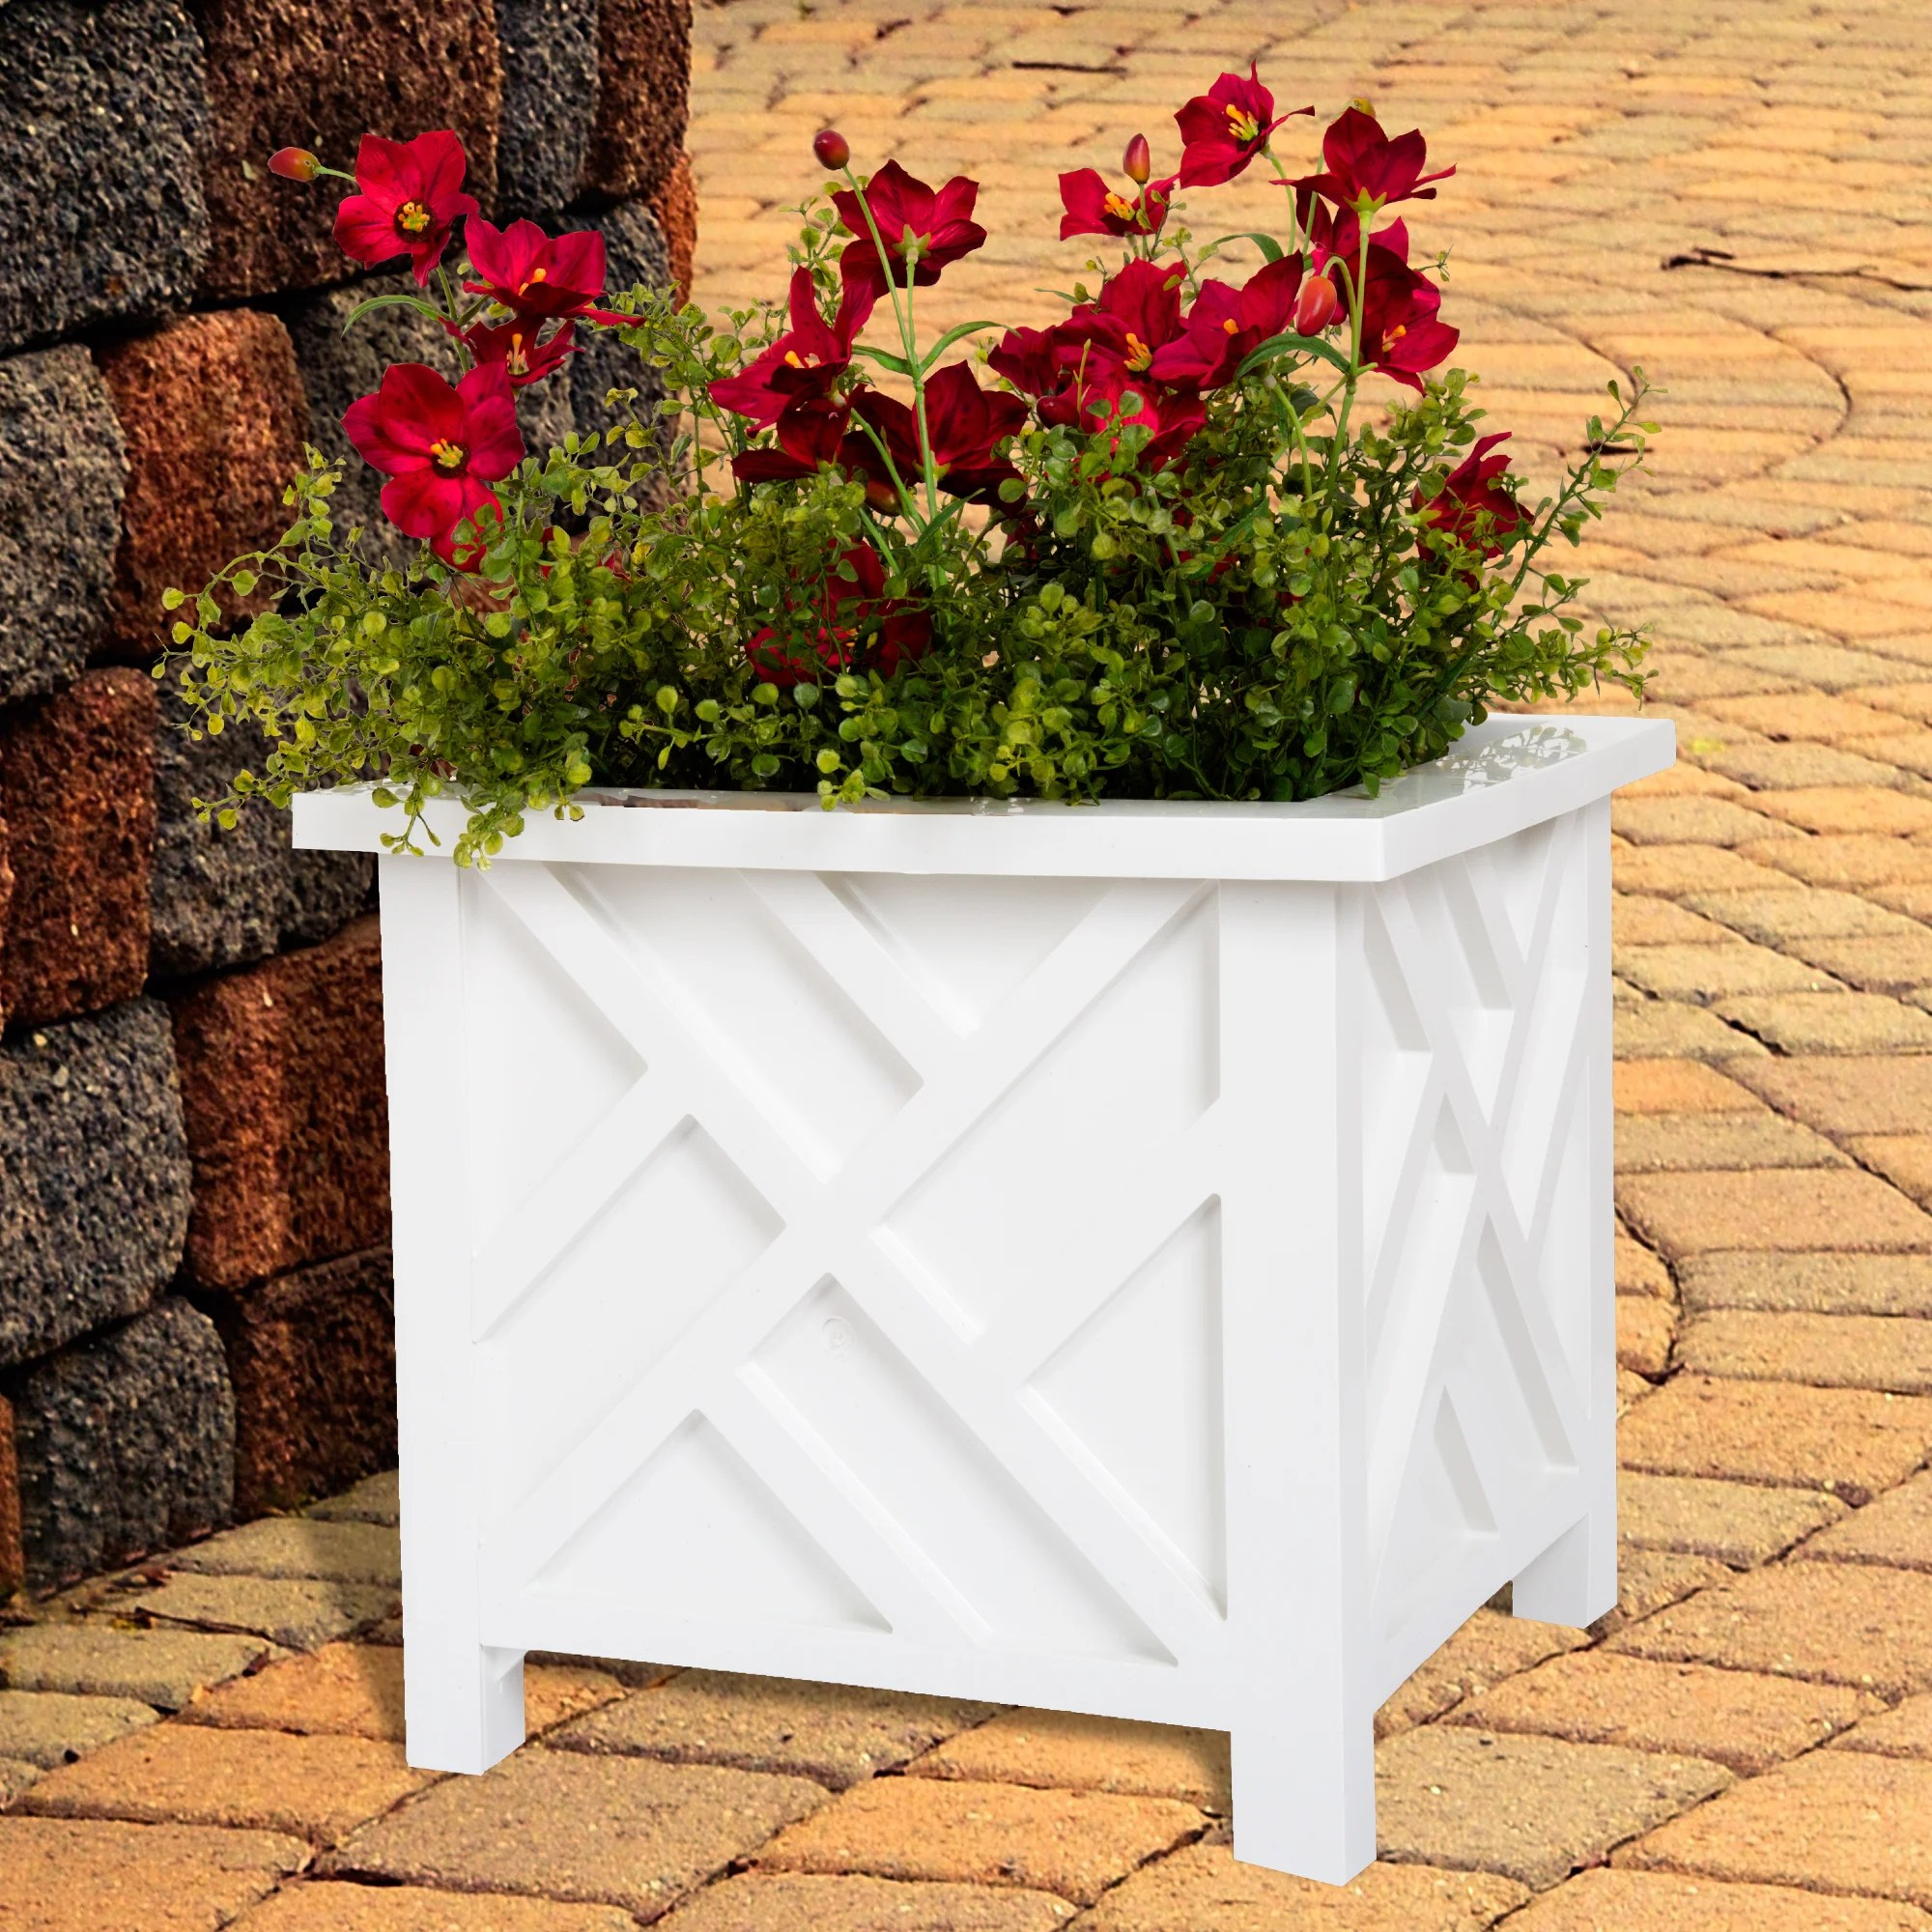 Outdoor Planters Near Me Buy Planters Plant Stands Online At Overstock Our Best Outdoor